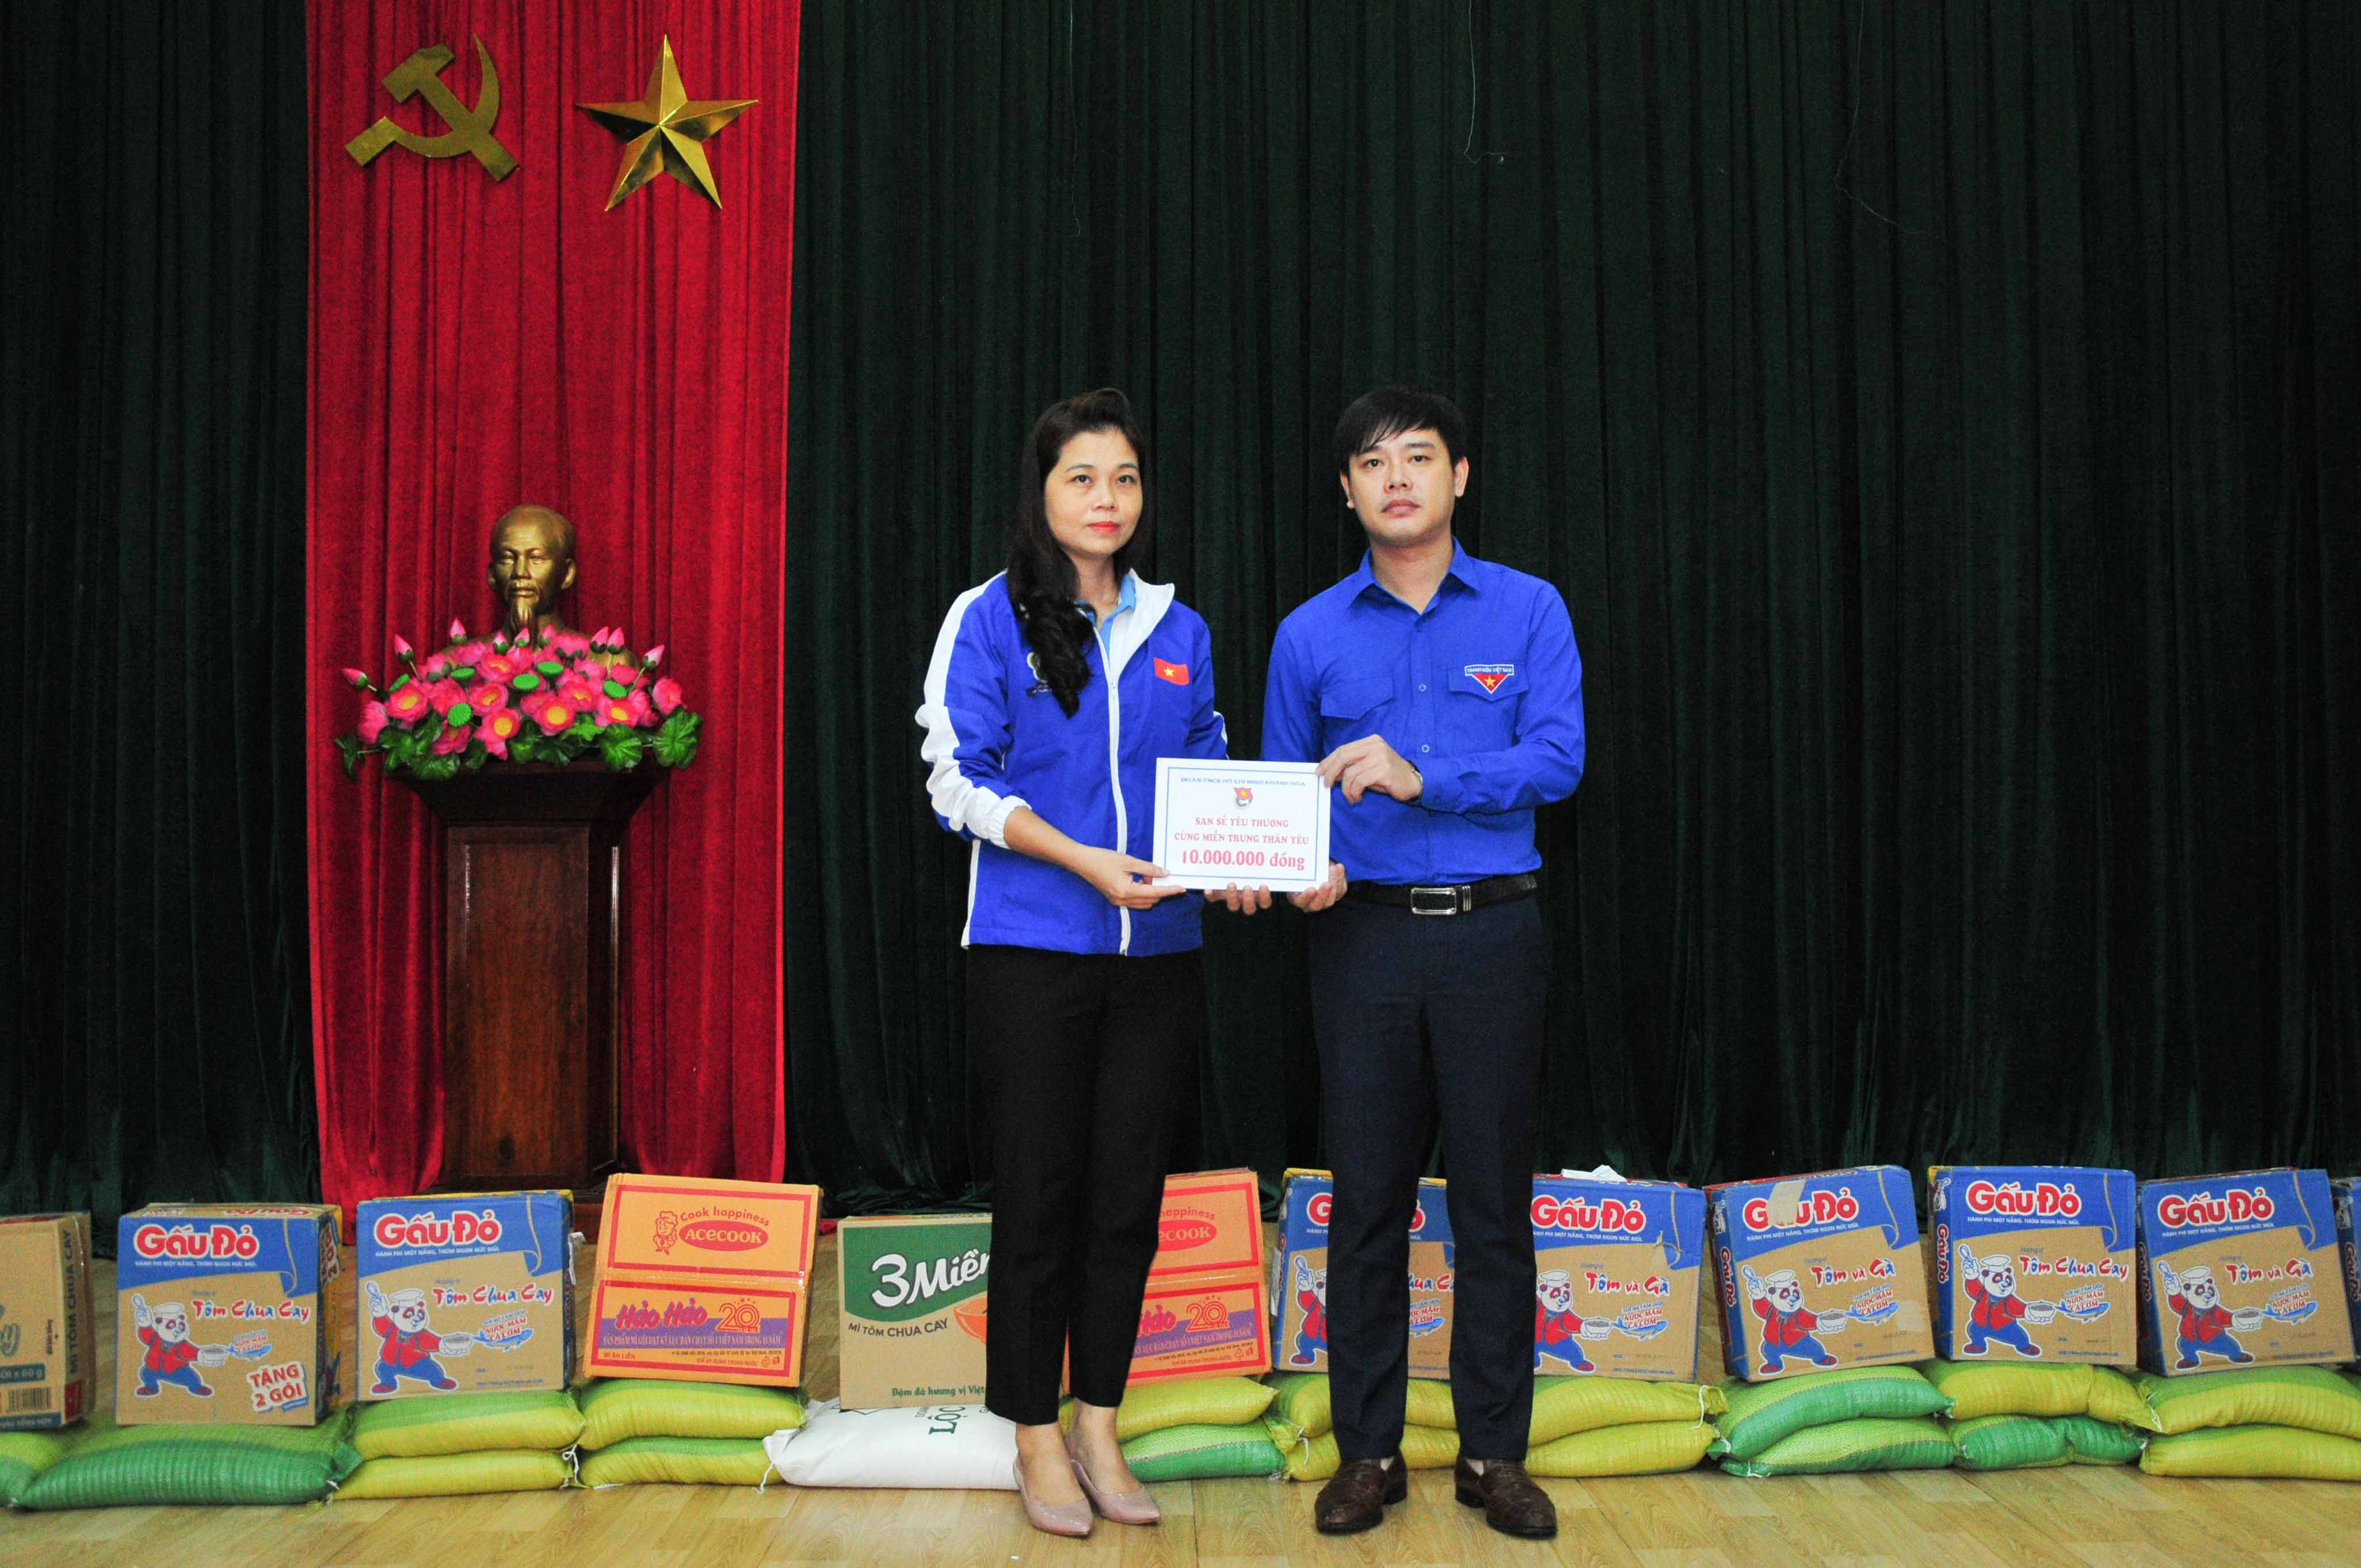 Khanh Hoa Youth Union handing VND10 million to Quang Nam Youth Union as a financial support to the family of Ho Van Do (deputy secretary of Phuoc Loc Commune Youth Union (Phuoc Son District, Quang Nam Province) who died on duty while helping people